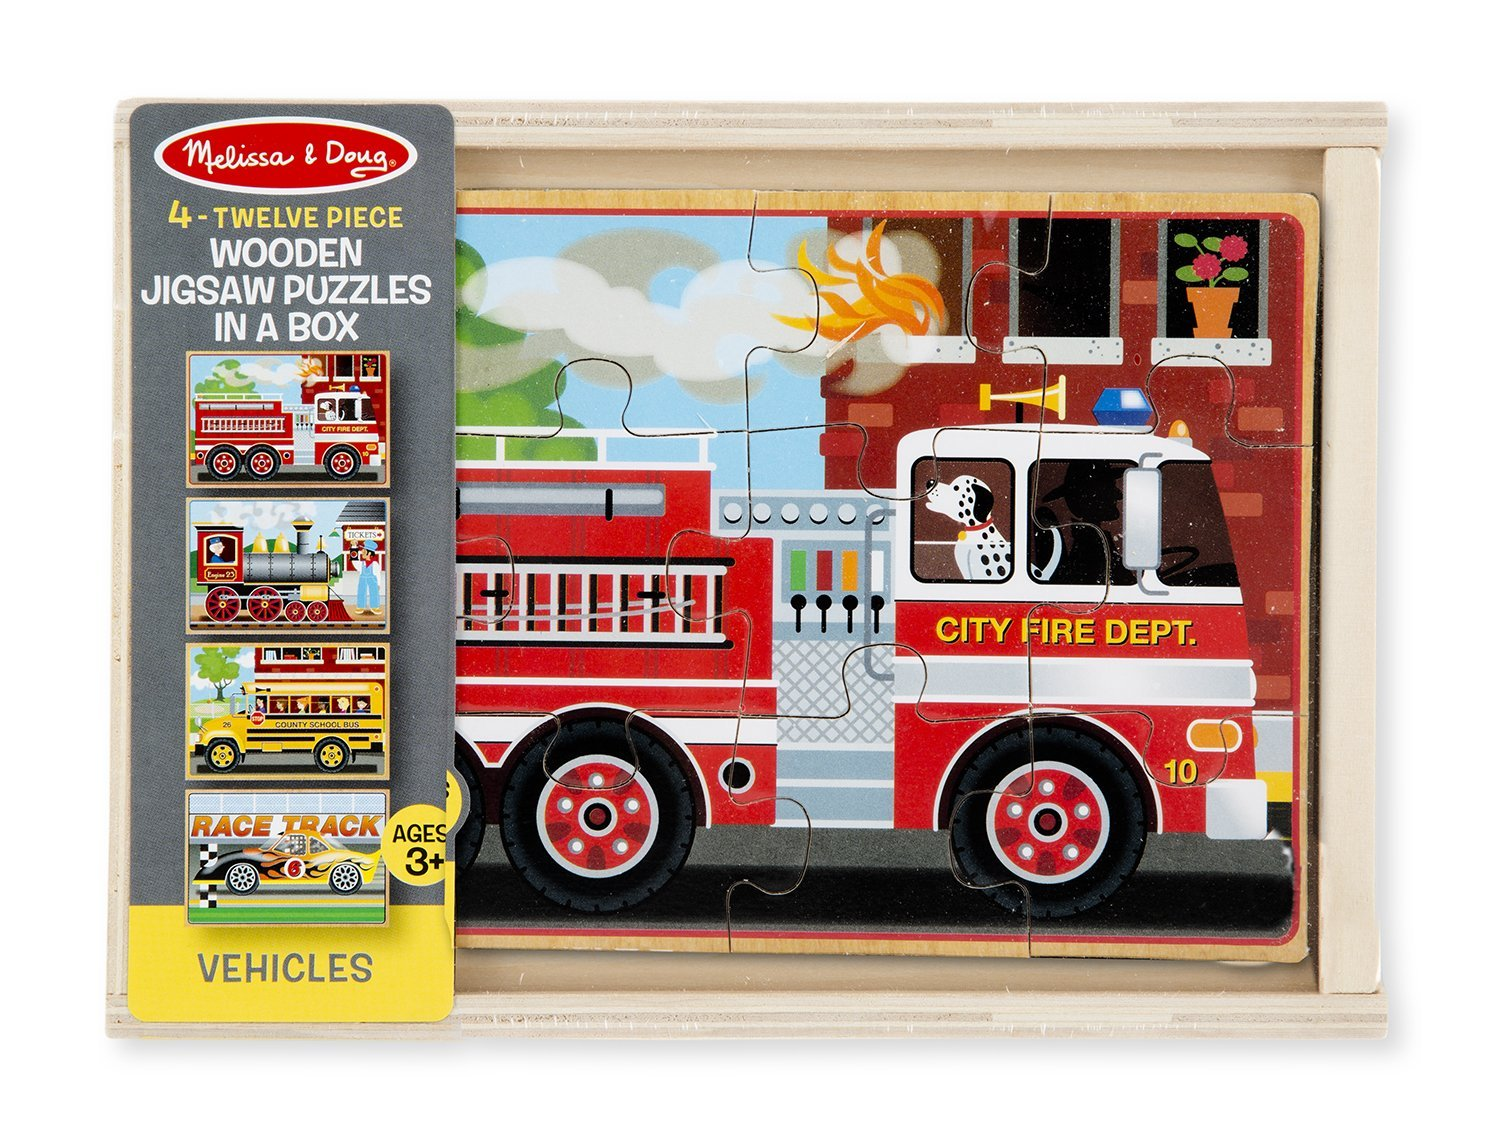 melissa-doug-wooden-jigsaw-puzzles-in-a-box